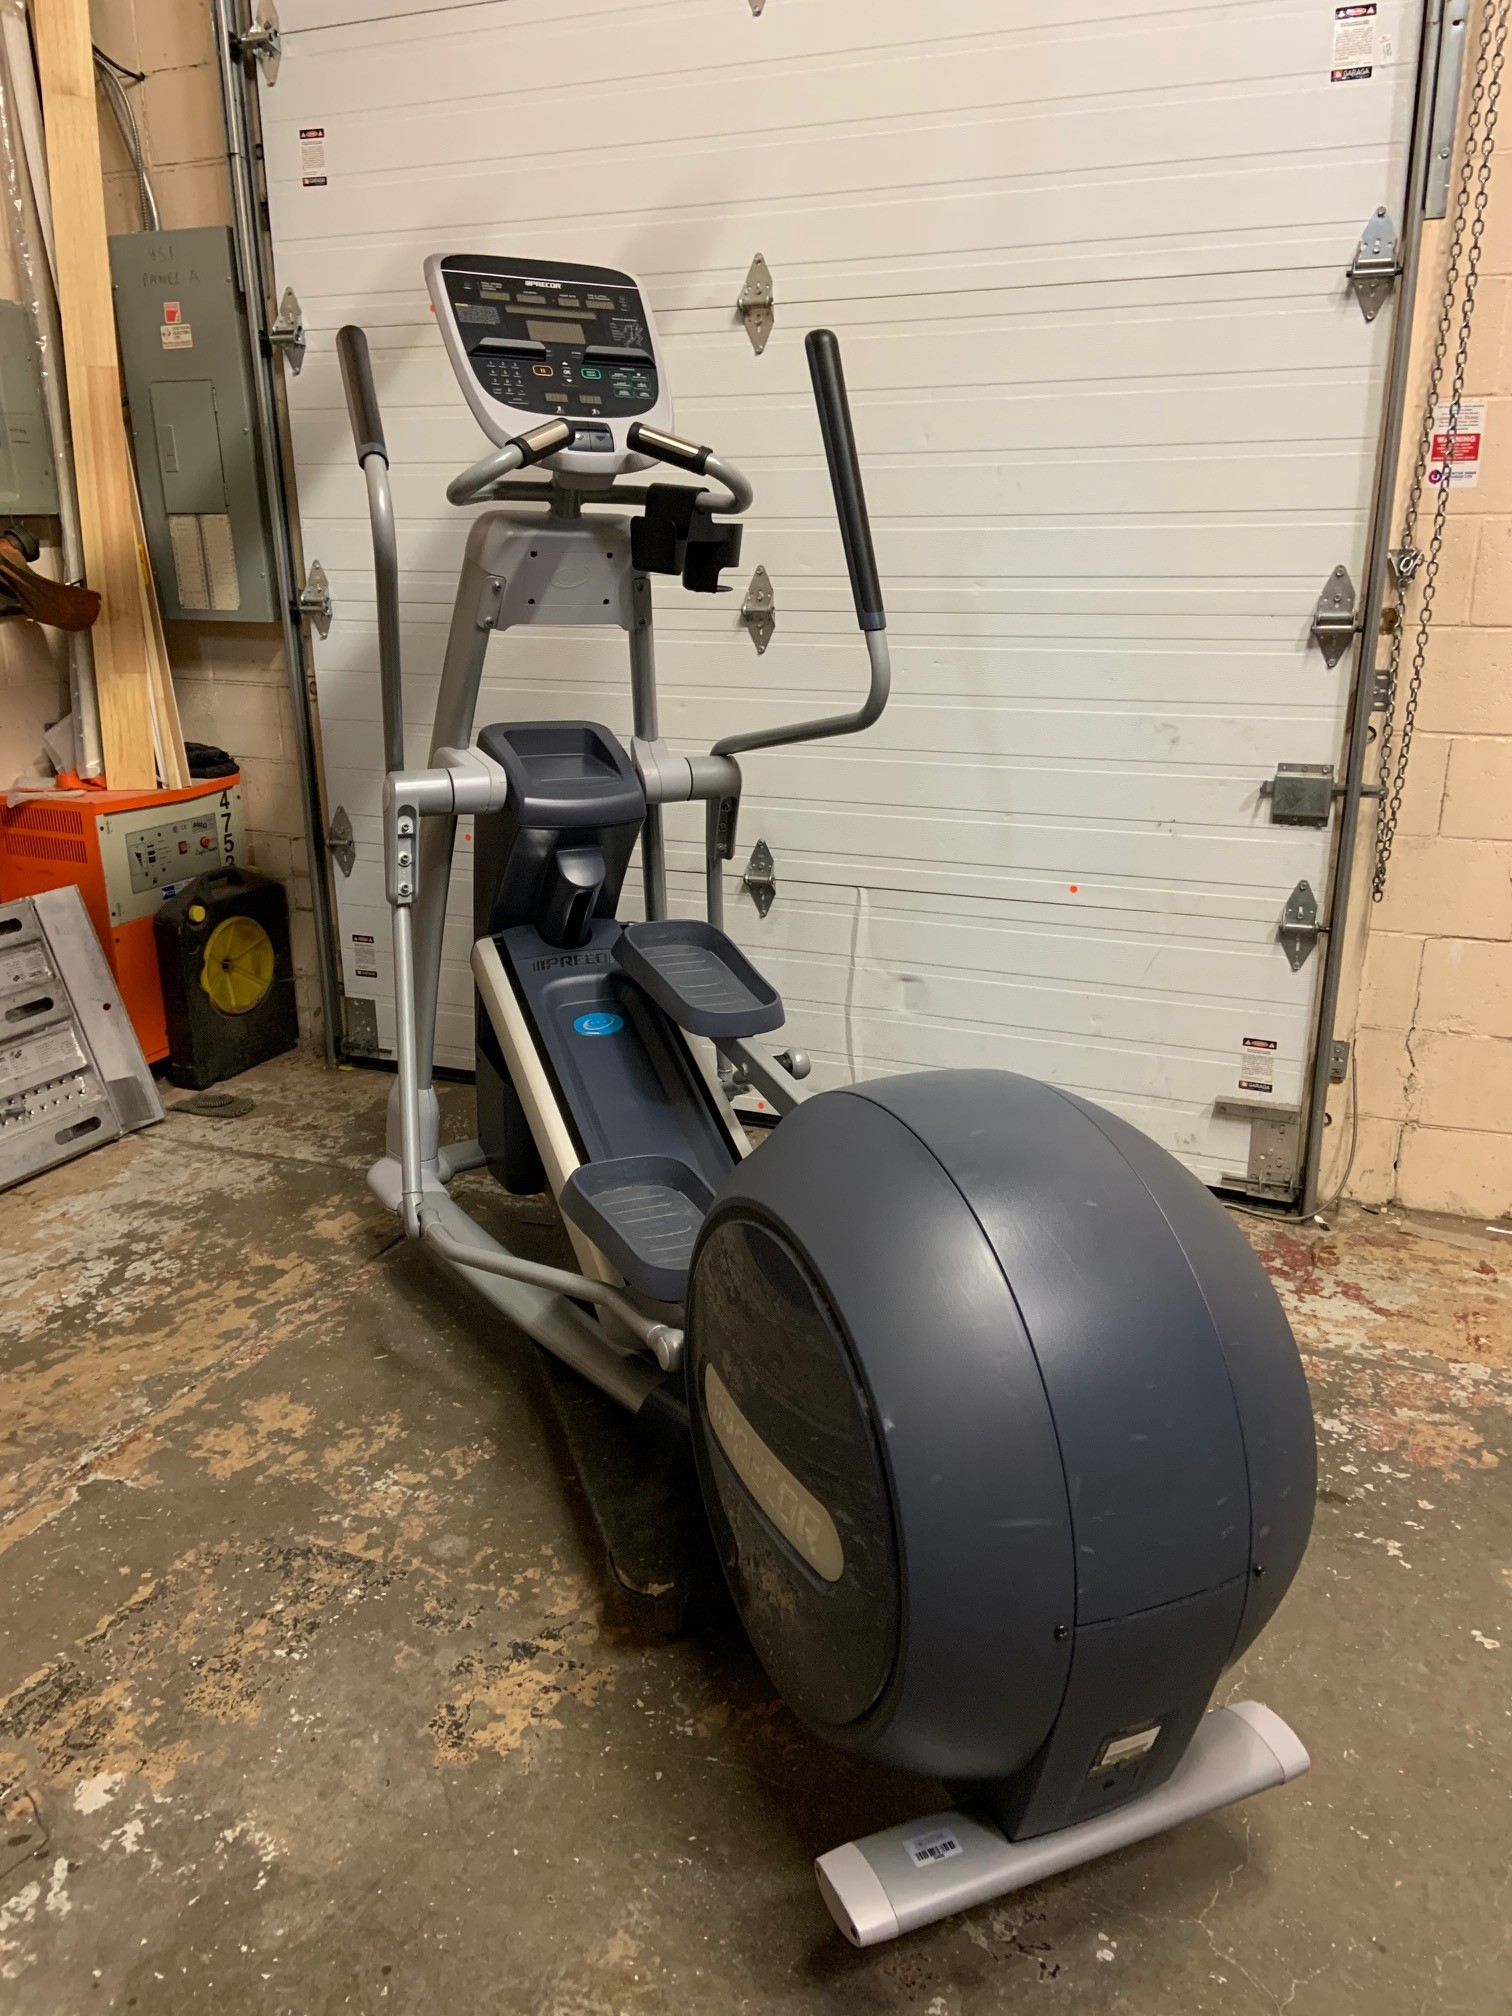 Used / Refurbished Ellipticals Available